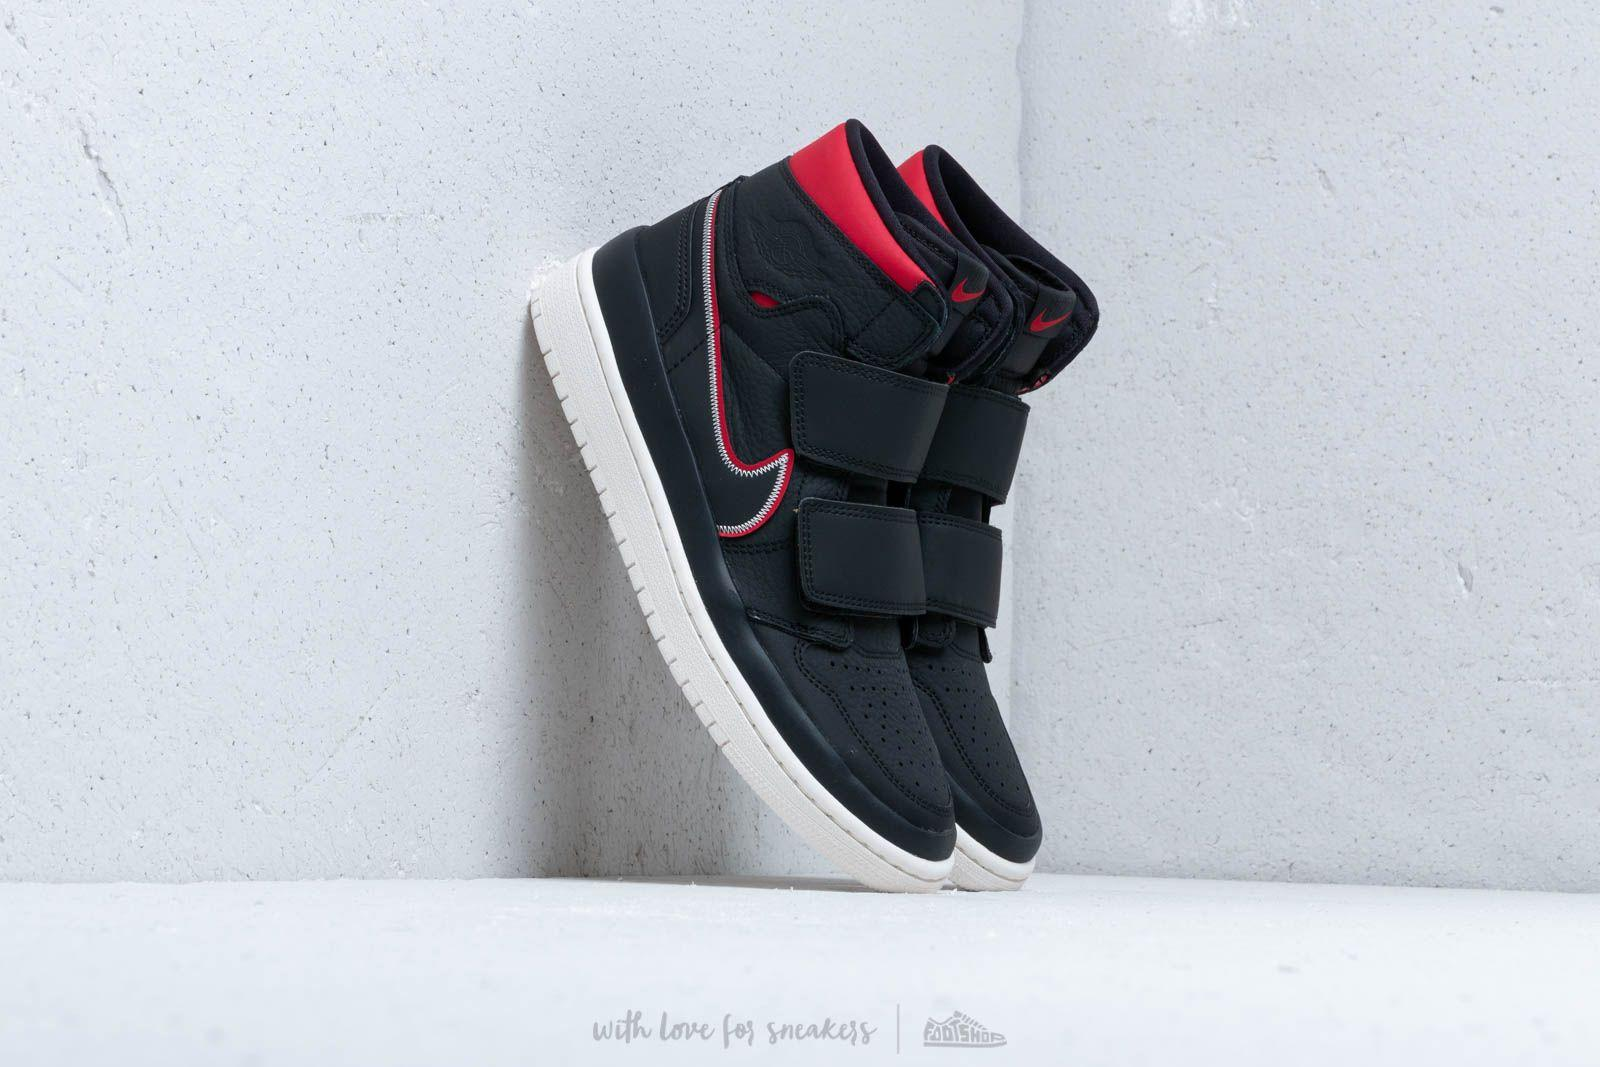 82362d49 Lyst - Nike Air 1 Re Hi Double Strp Black/ Gym Red-sail in Black for Men